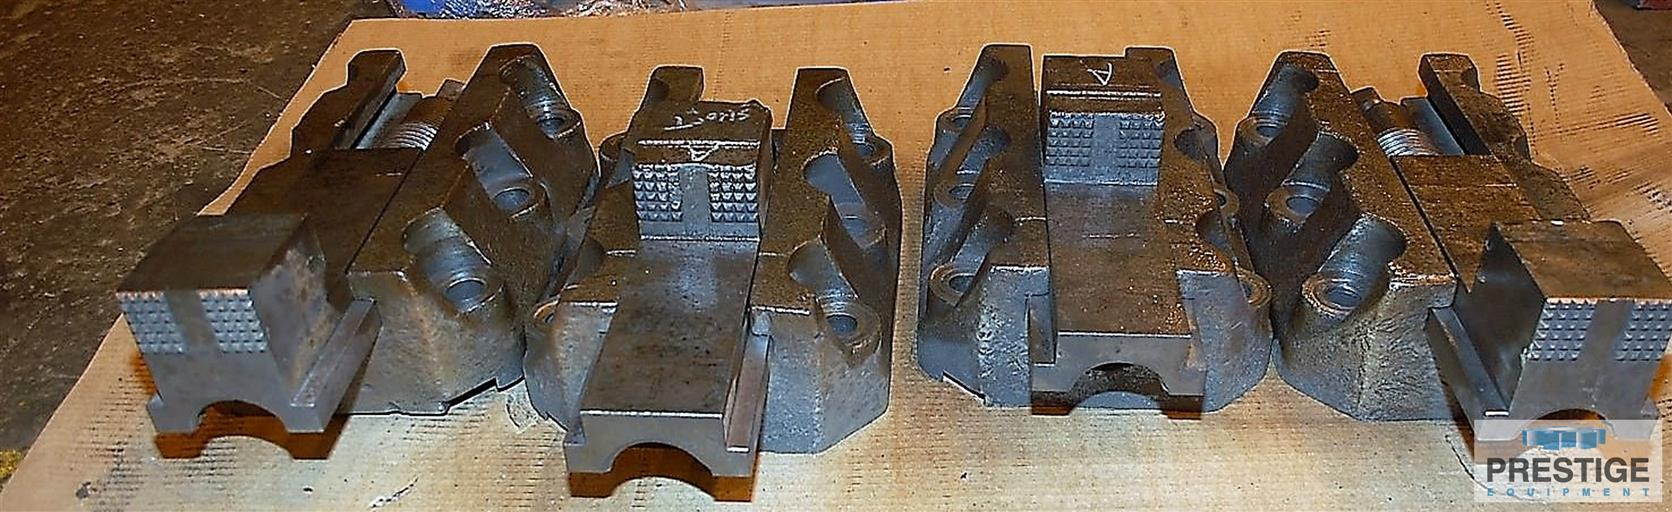 (4)-13-x-9.5-Face-Plate-Type-Chuck-Jaws